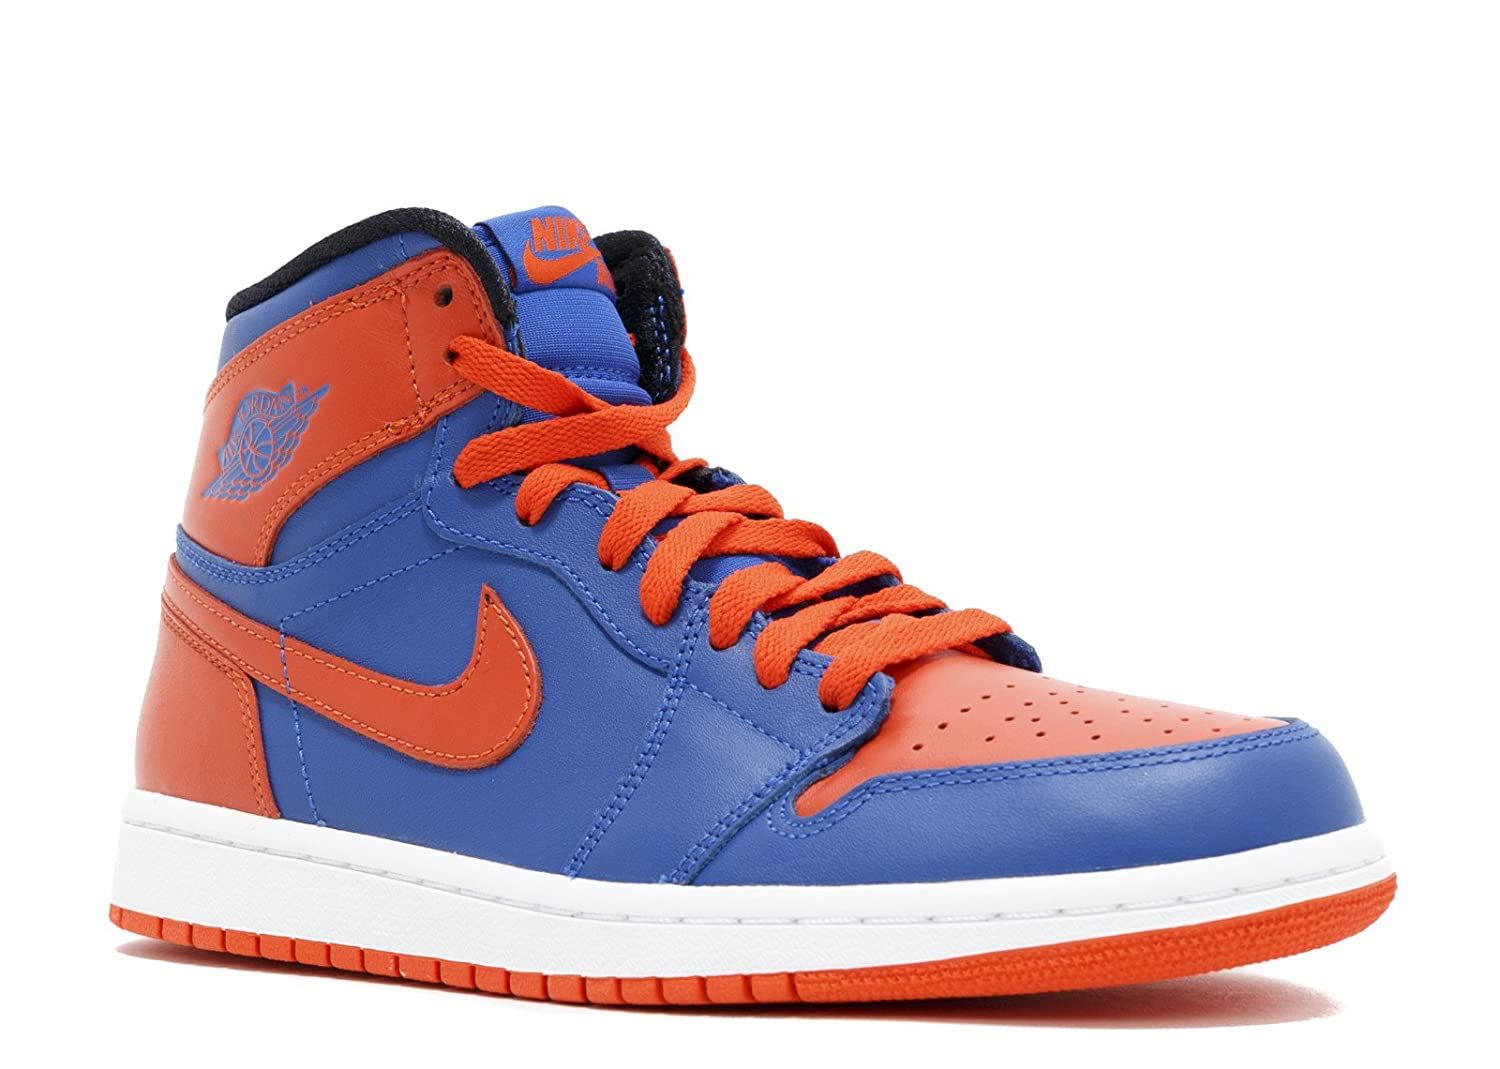 s Air Jordan 1 Retro Hoch OG Knicks Leder-Basketball-Schuhe  11|Game Royal, Team Orange-gm Ryl